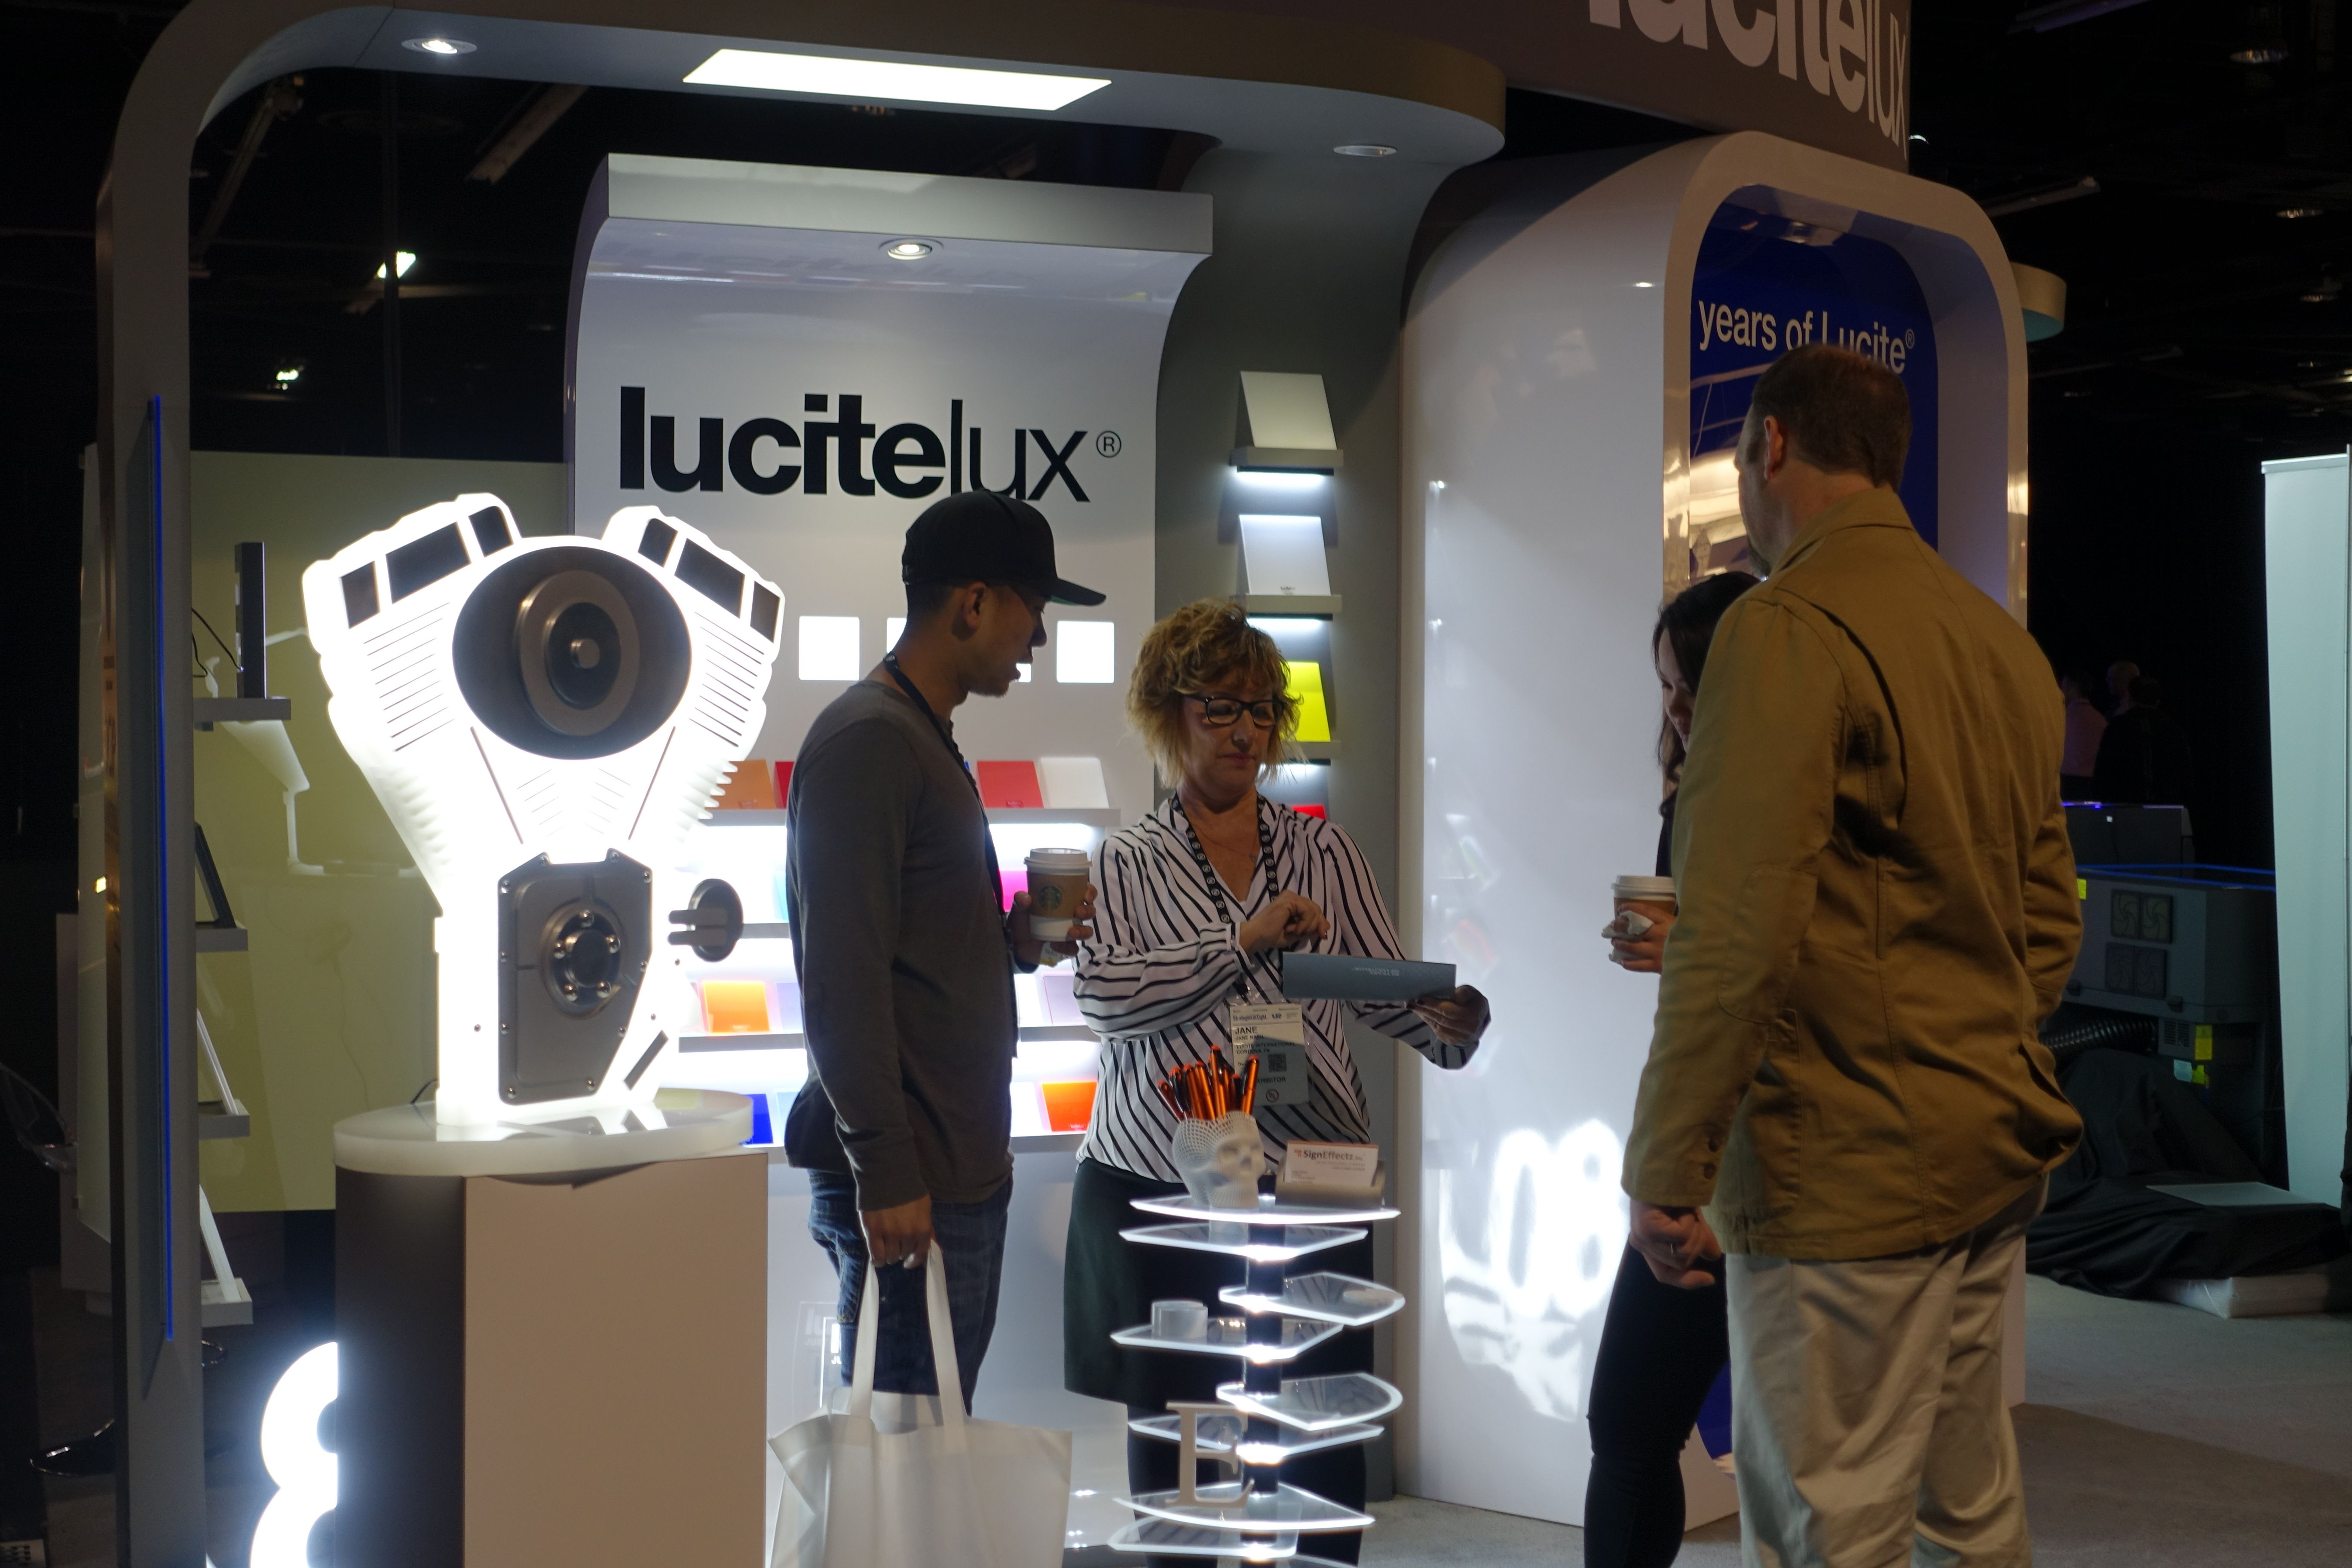 The LuciteLux® team in conversation with visitors to their booth at Lightspace California.